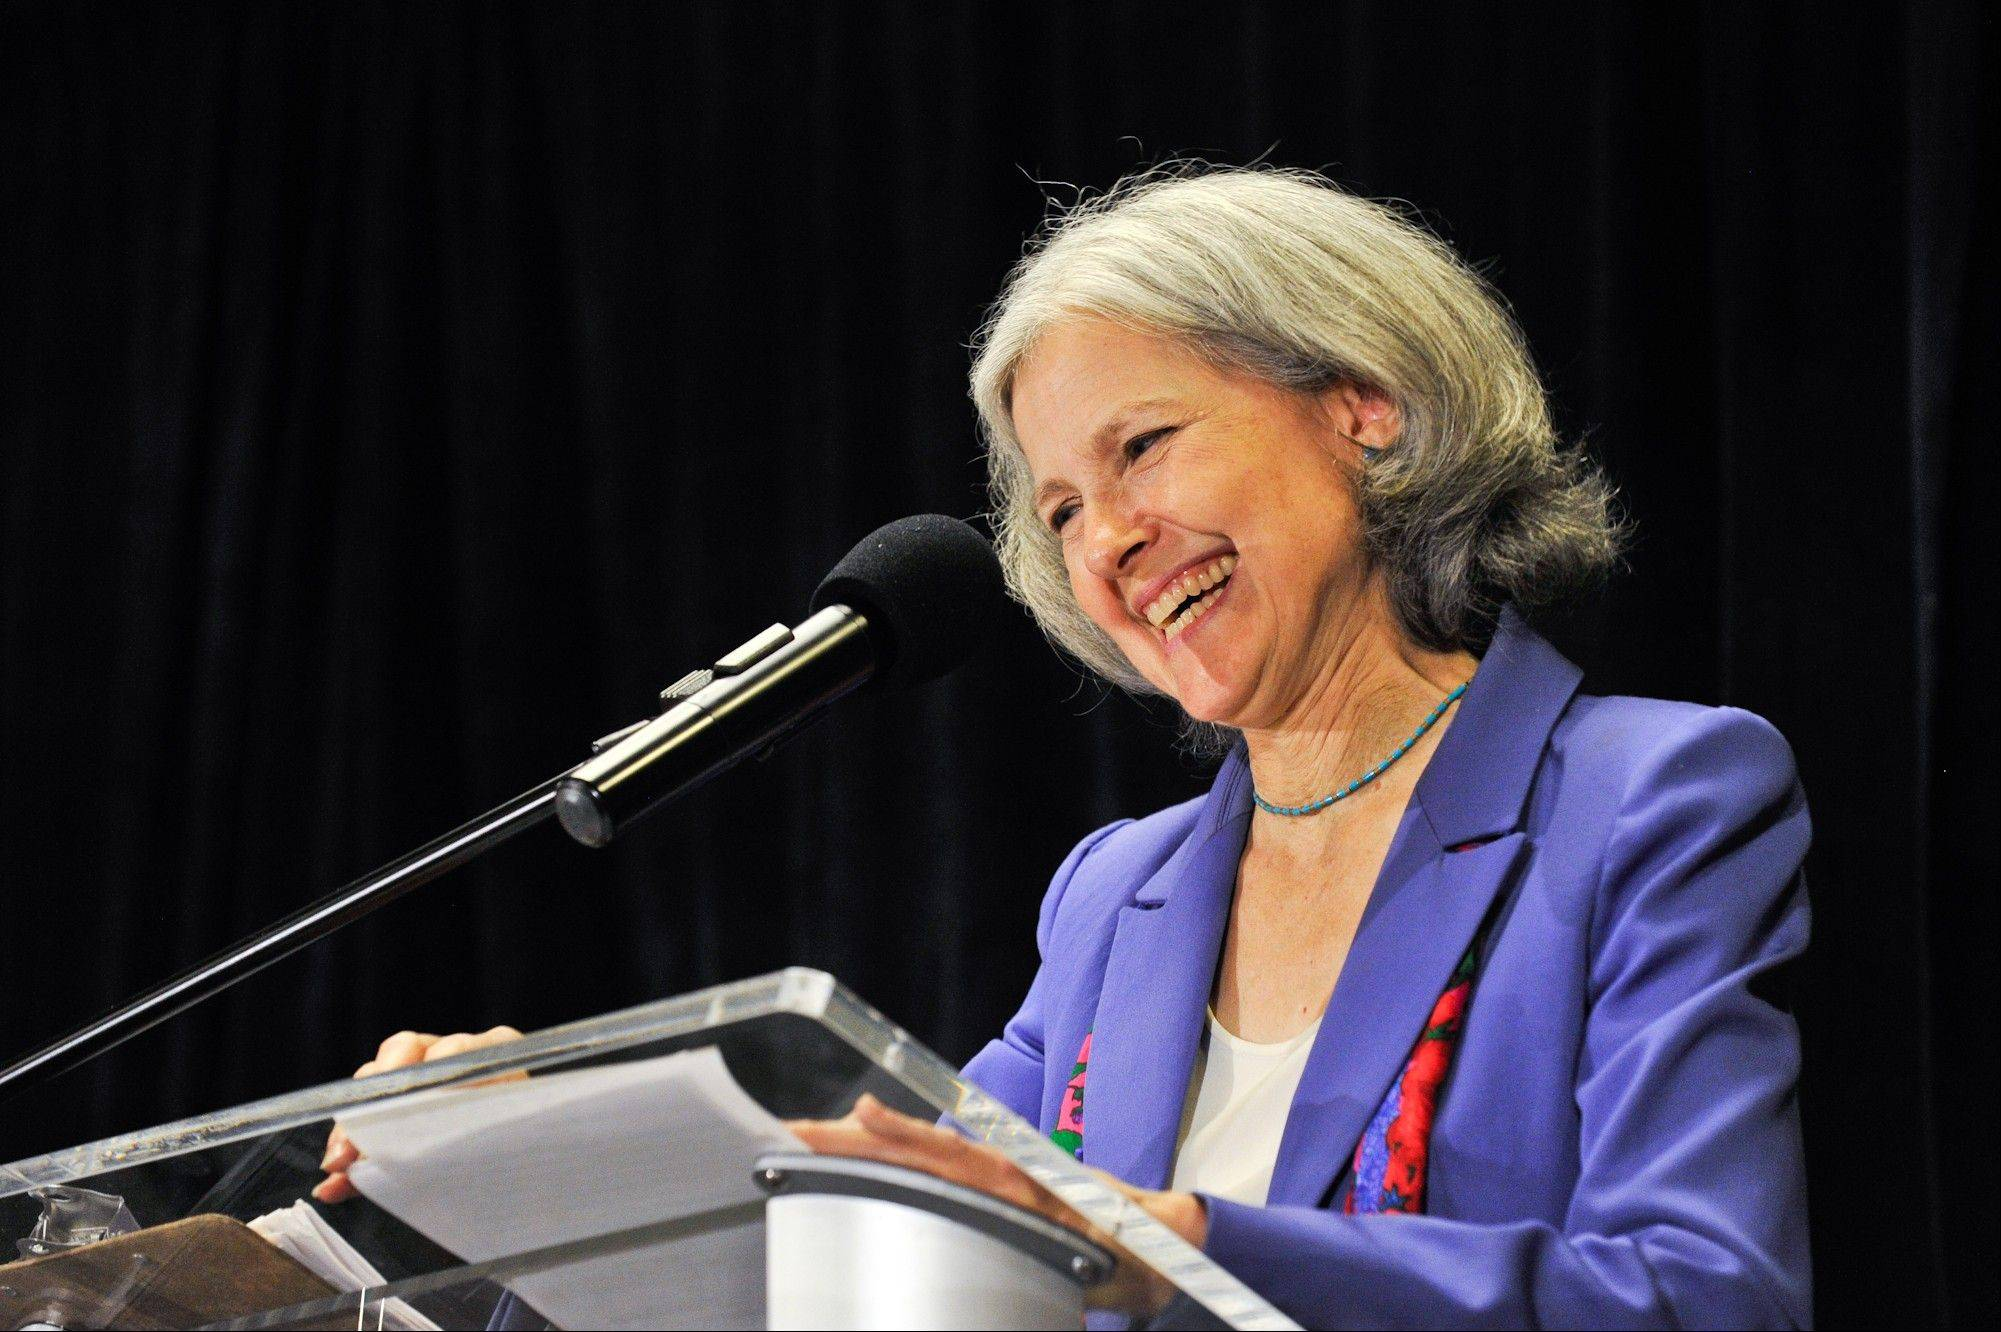 Green Party presidential candidate Jill Stein delivers her acceptance speech at the Green Party's convention in Baltimore on Saturday.